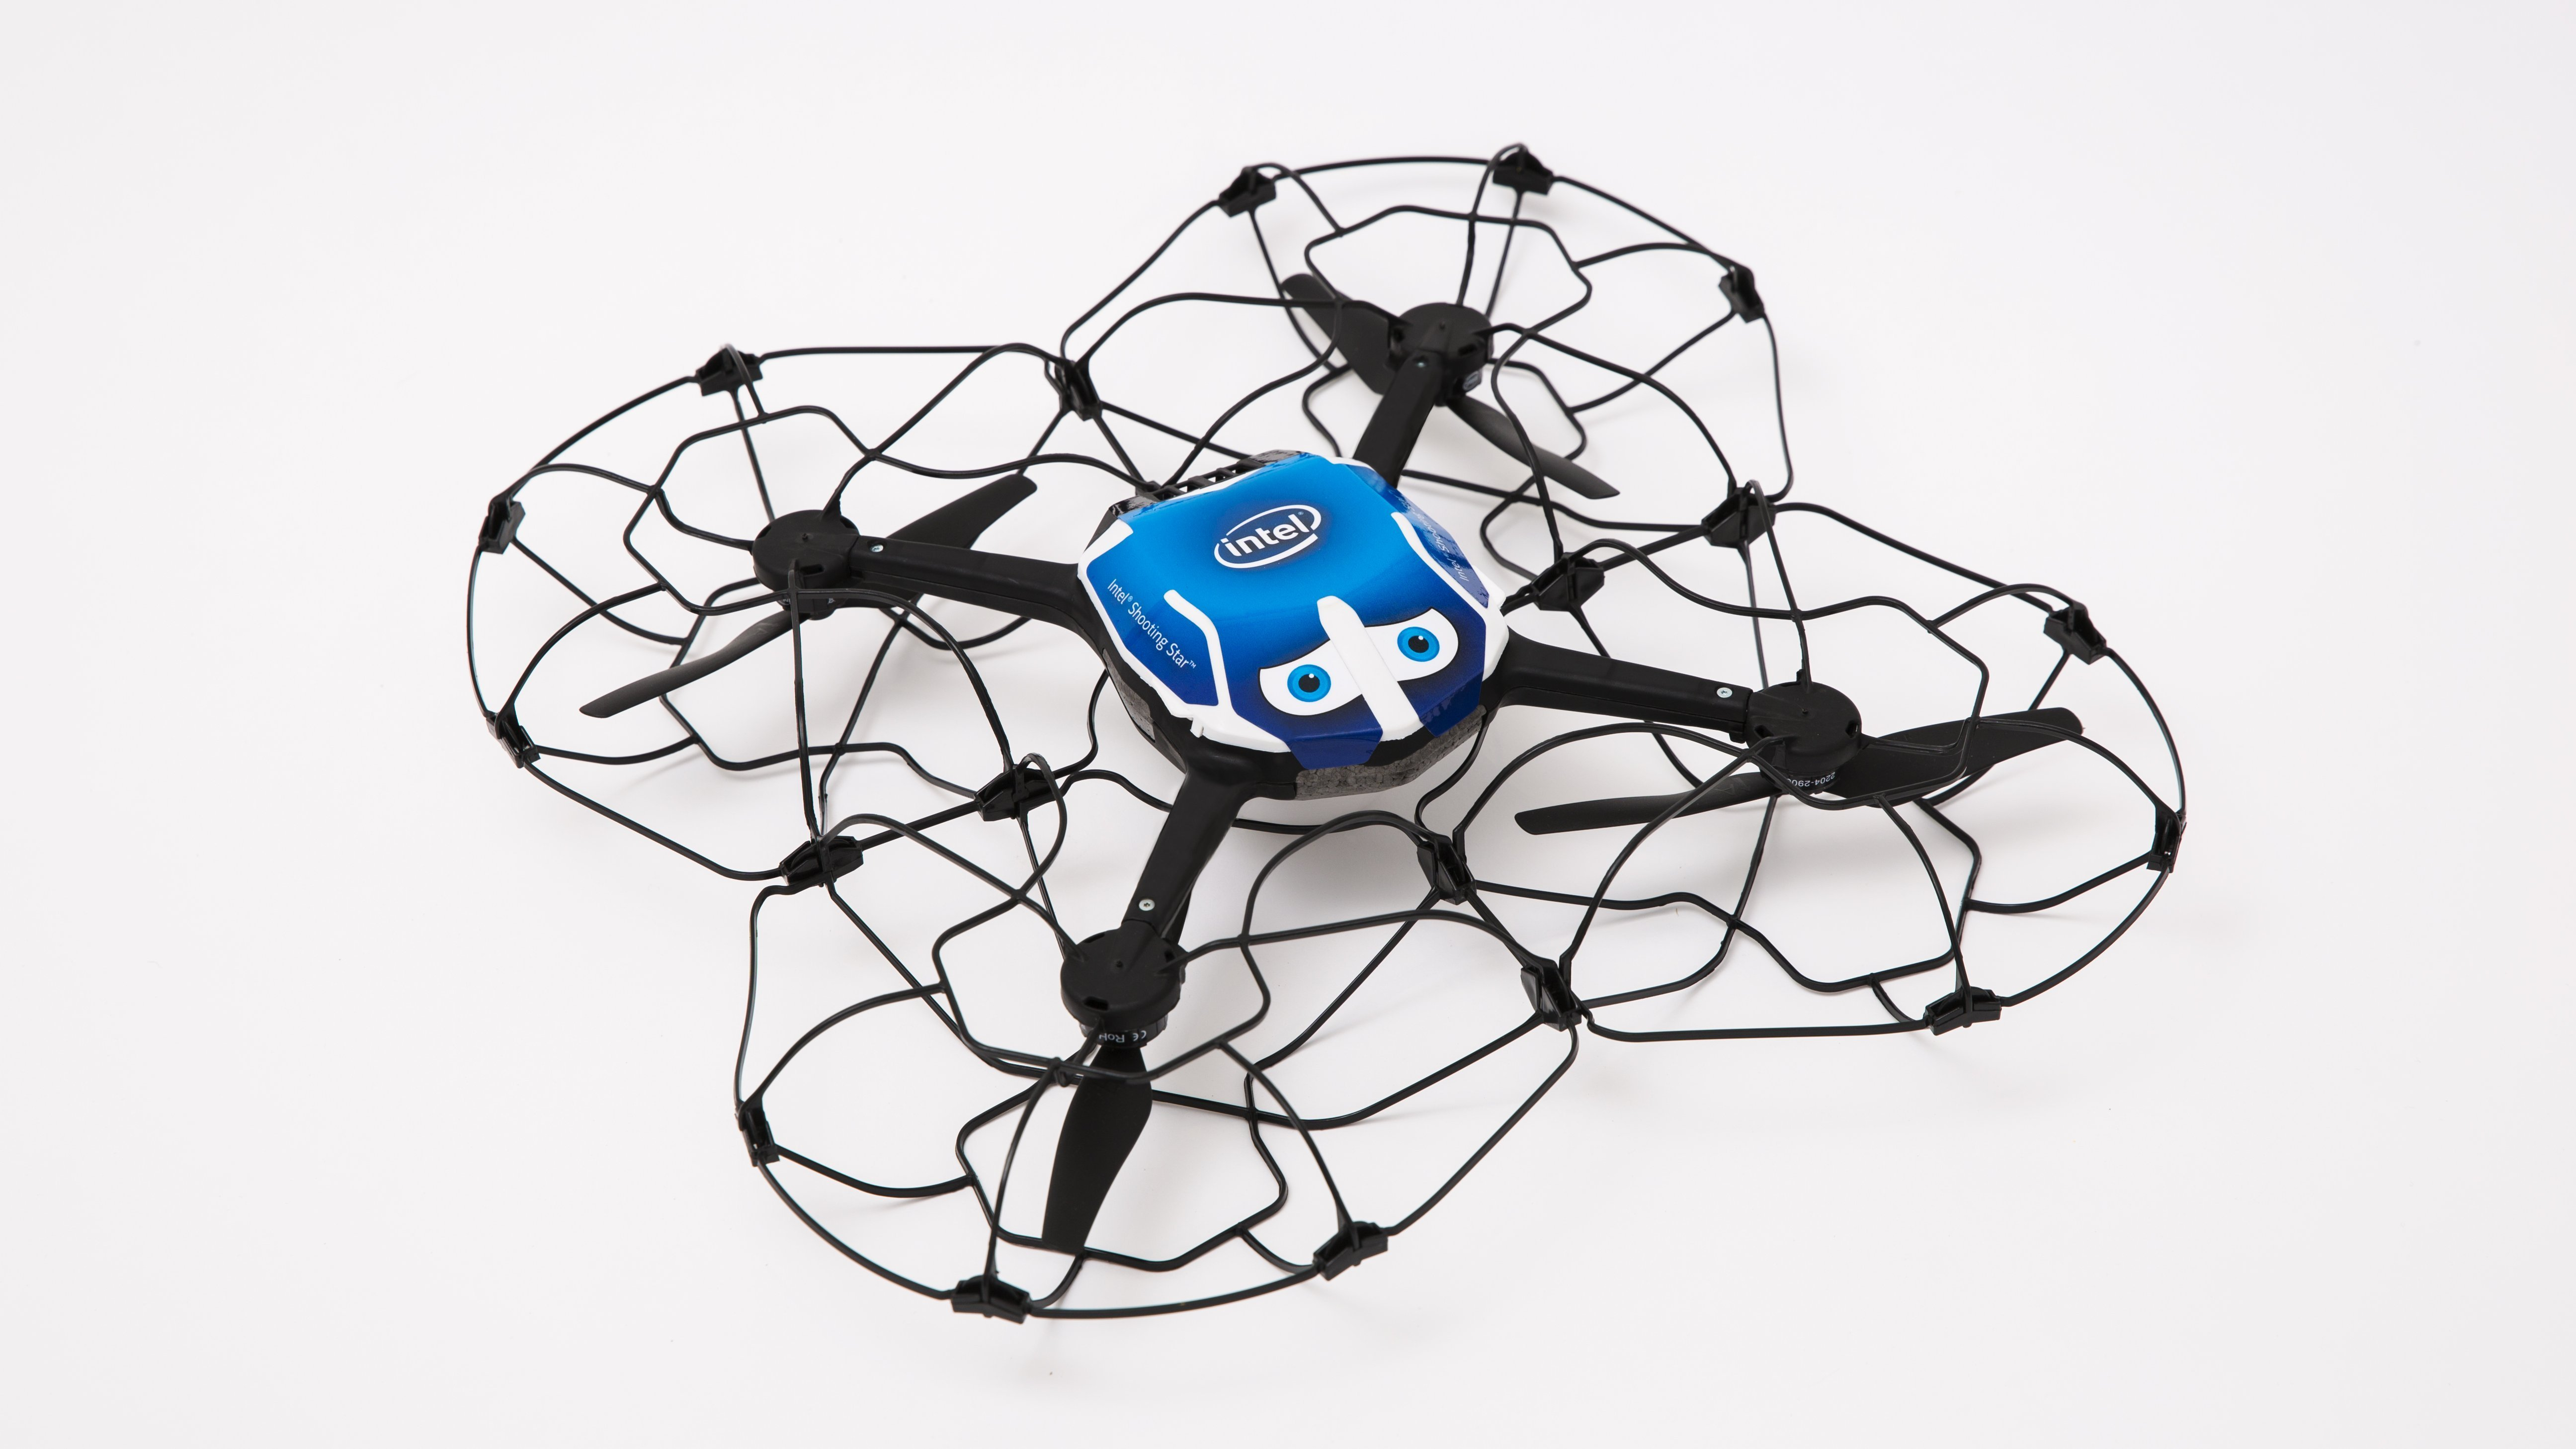 Intel's drones are large LED lights with propellers and sensors attached. They weigh less than a pound.